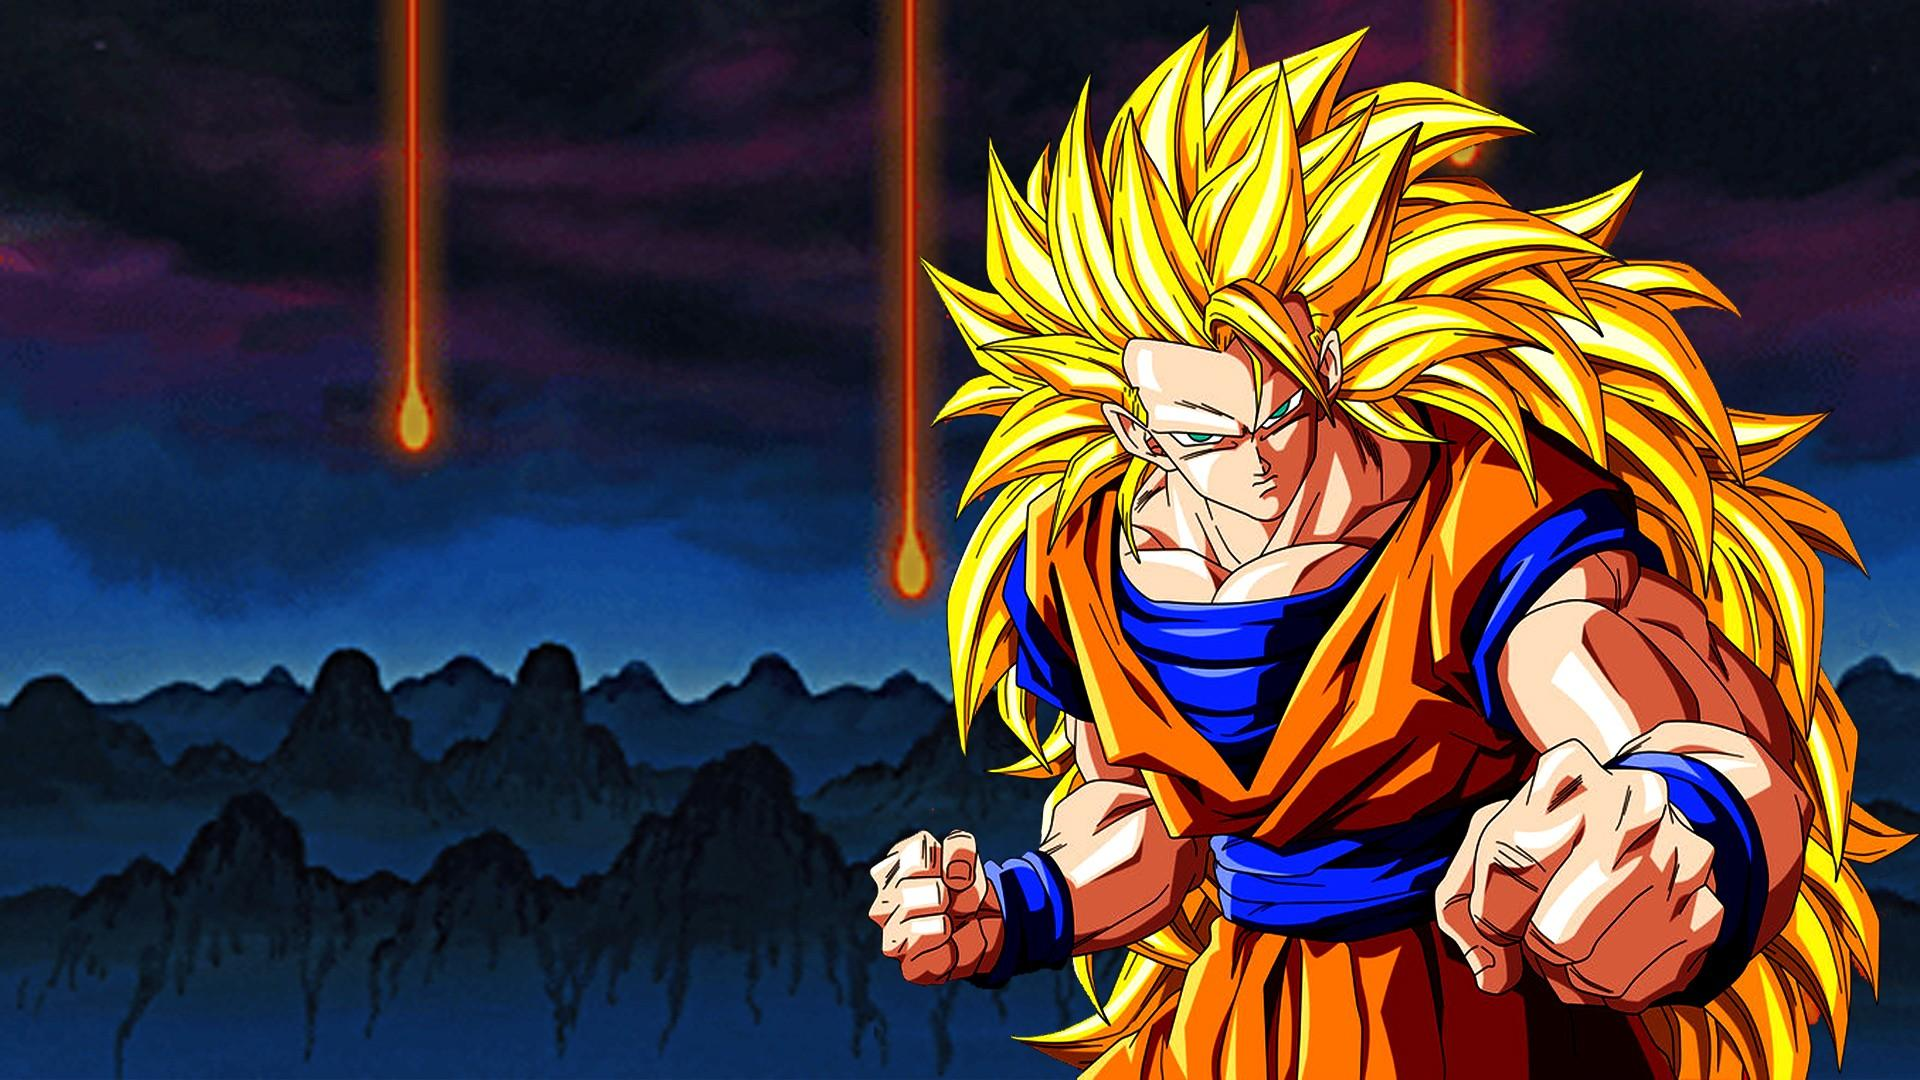 Goku super saiyan wallpaper 77929 1920x1080